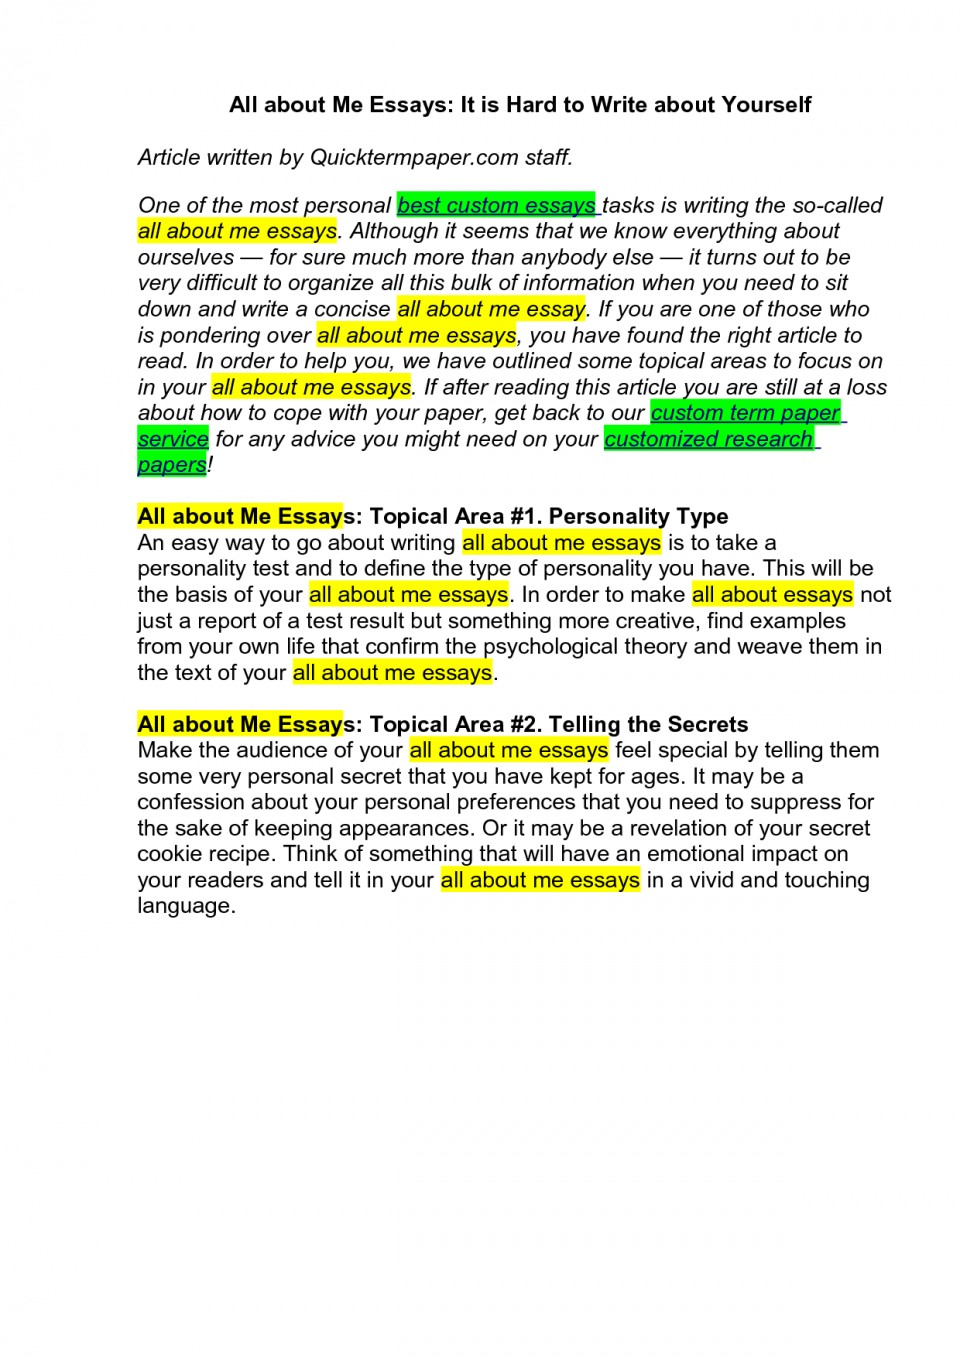 021 Essay Example How To Start An Amazing With A Hook Do U About Book Autobiography Yourself 960